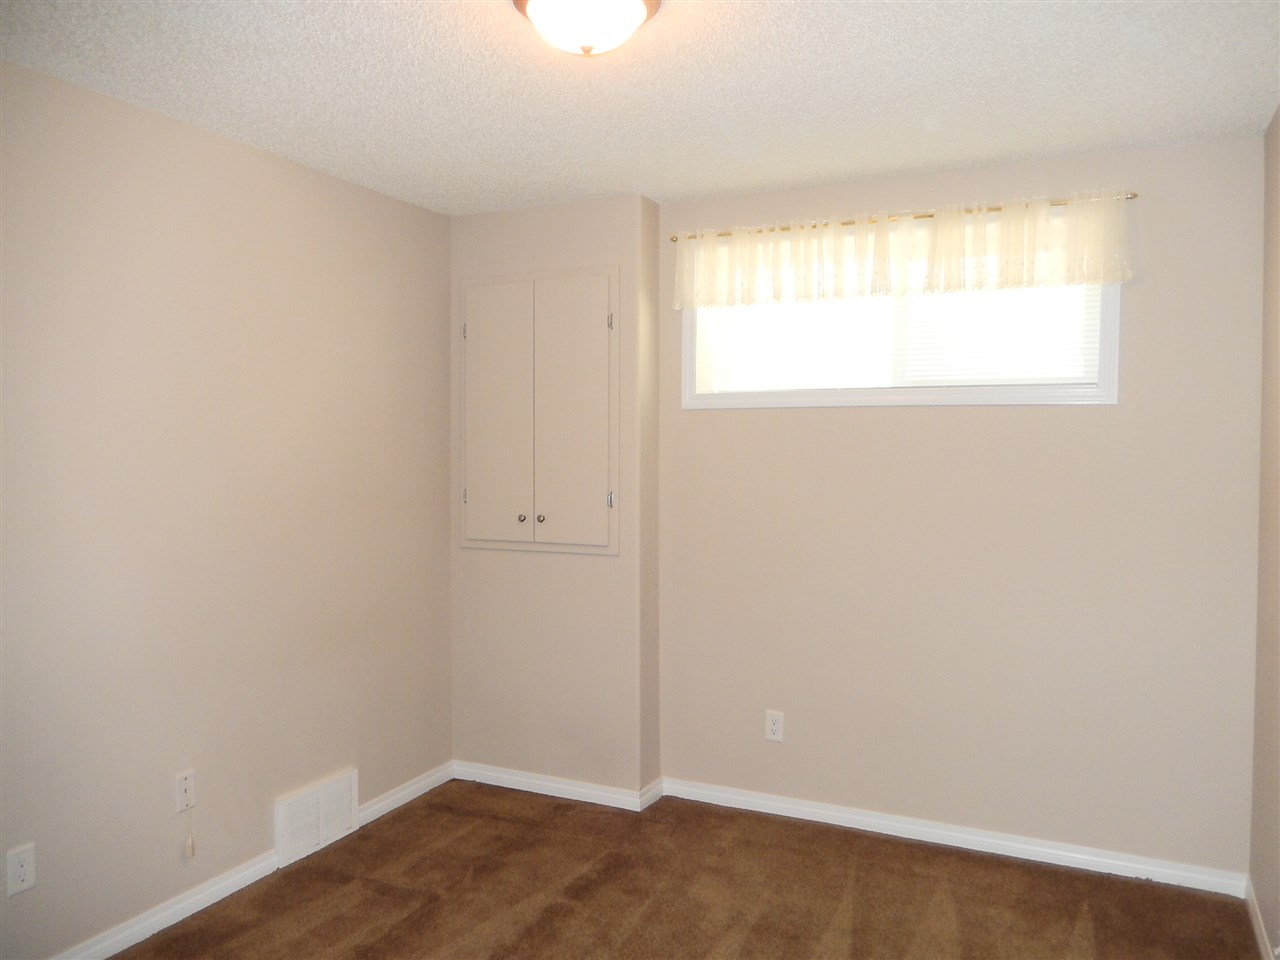 Spare bedroom on the lower level.